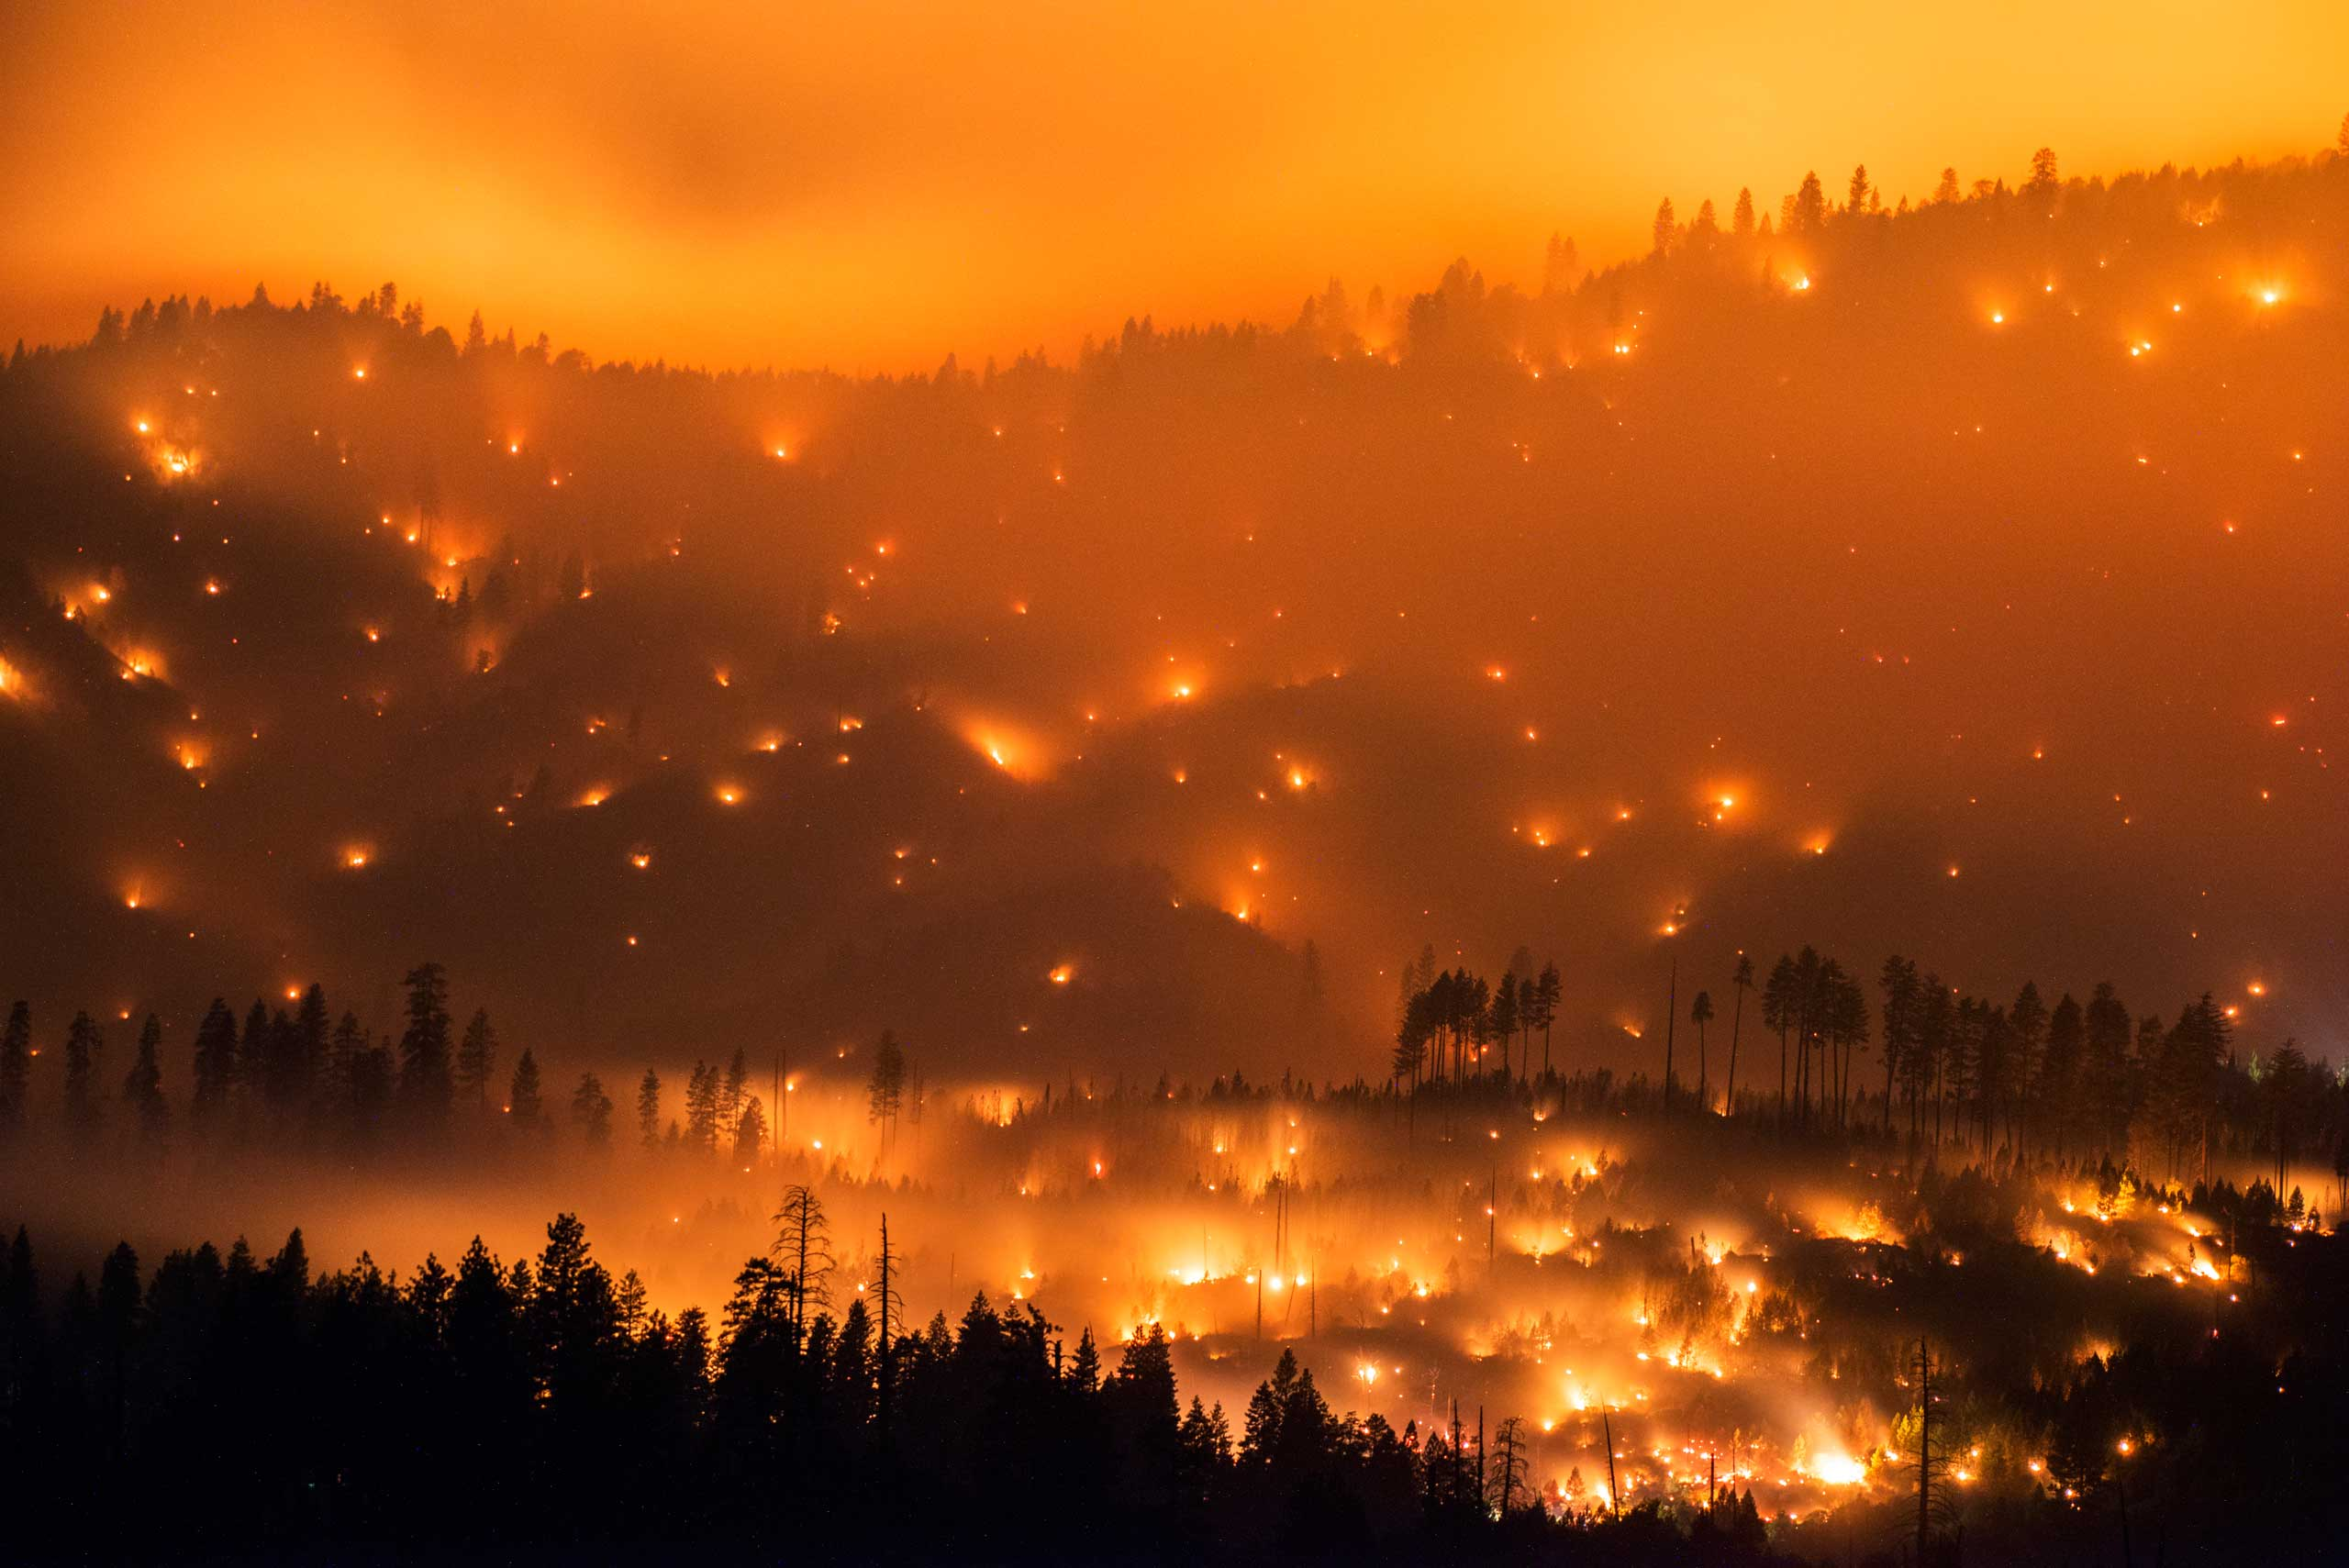 The El Portal Fire burns on a hillside in the Stanislaus National Forest and Yosemite National Park, July 27, 2014.